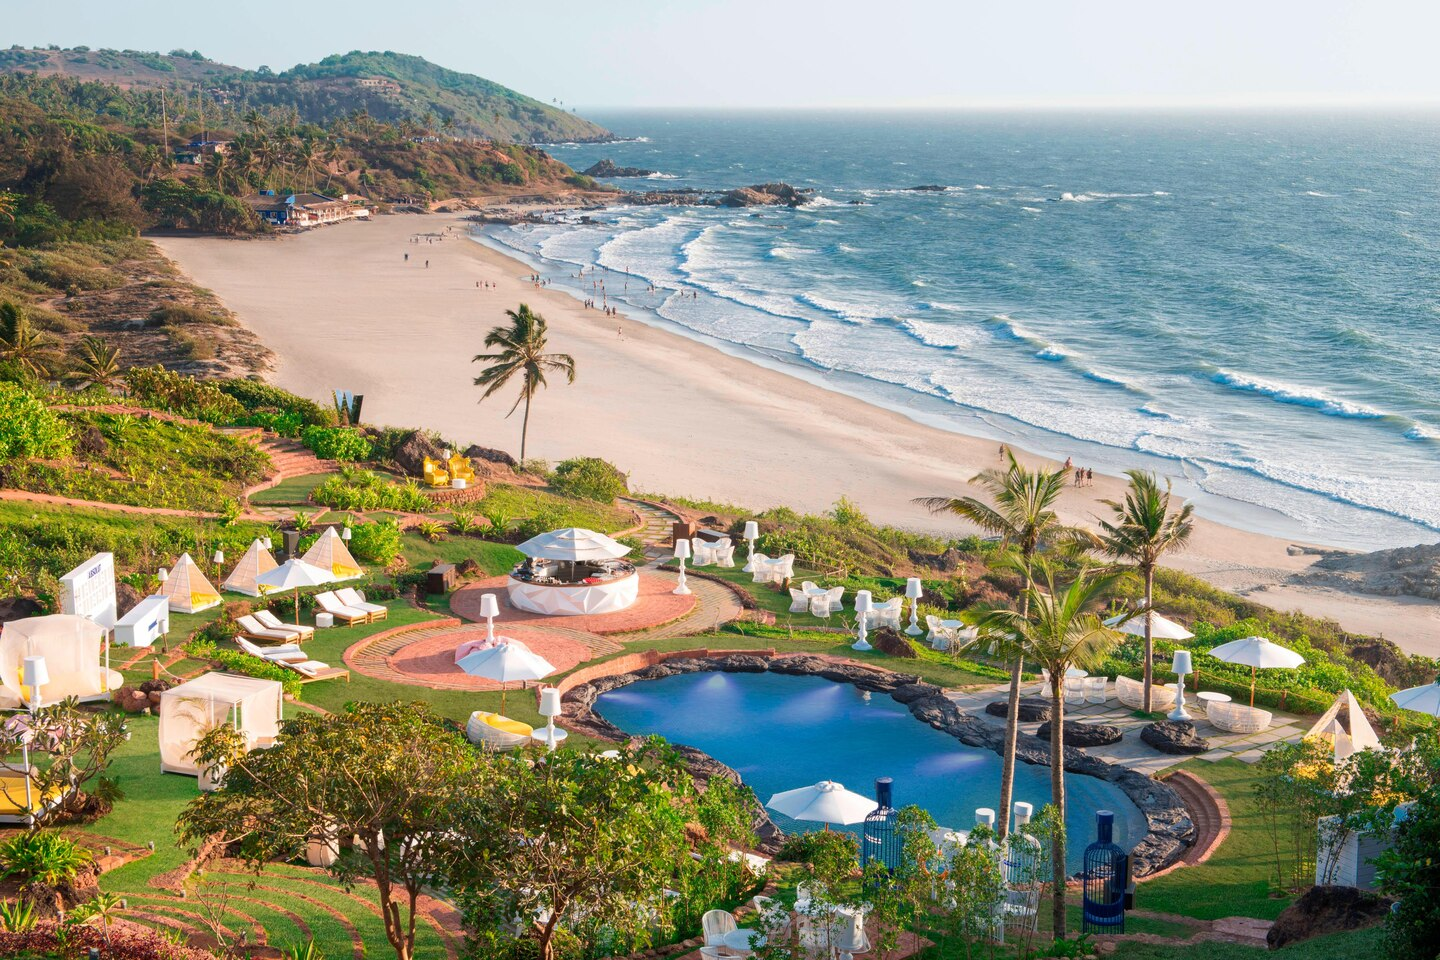 View of the Vagator beach and W Goa